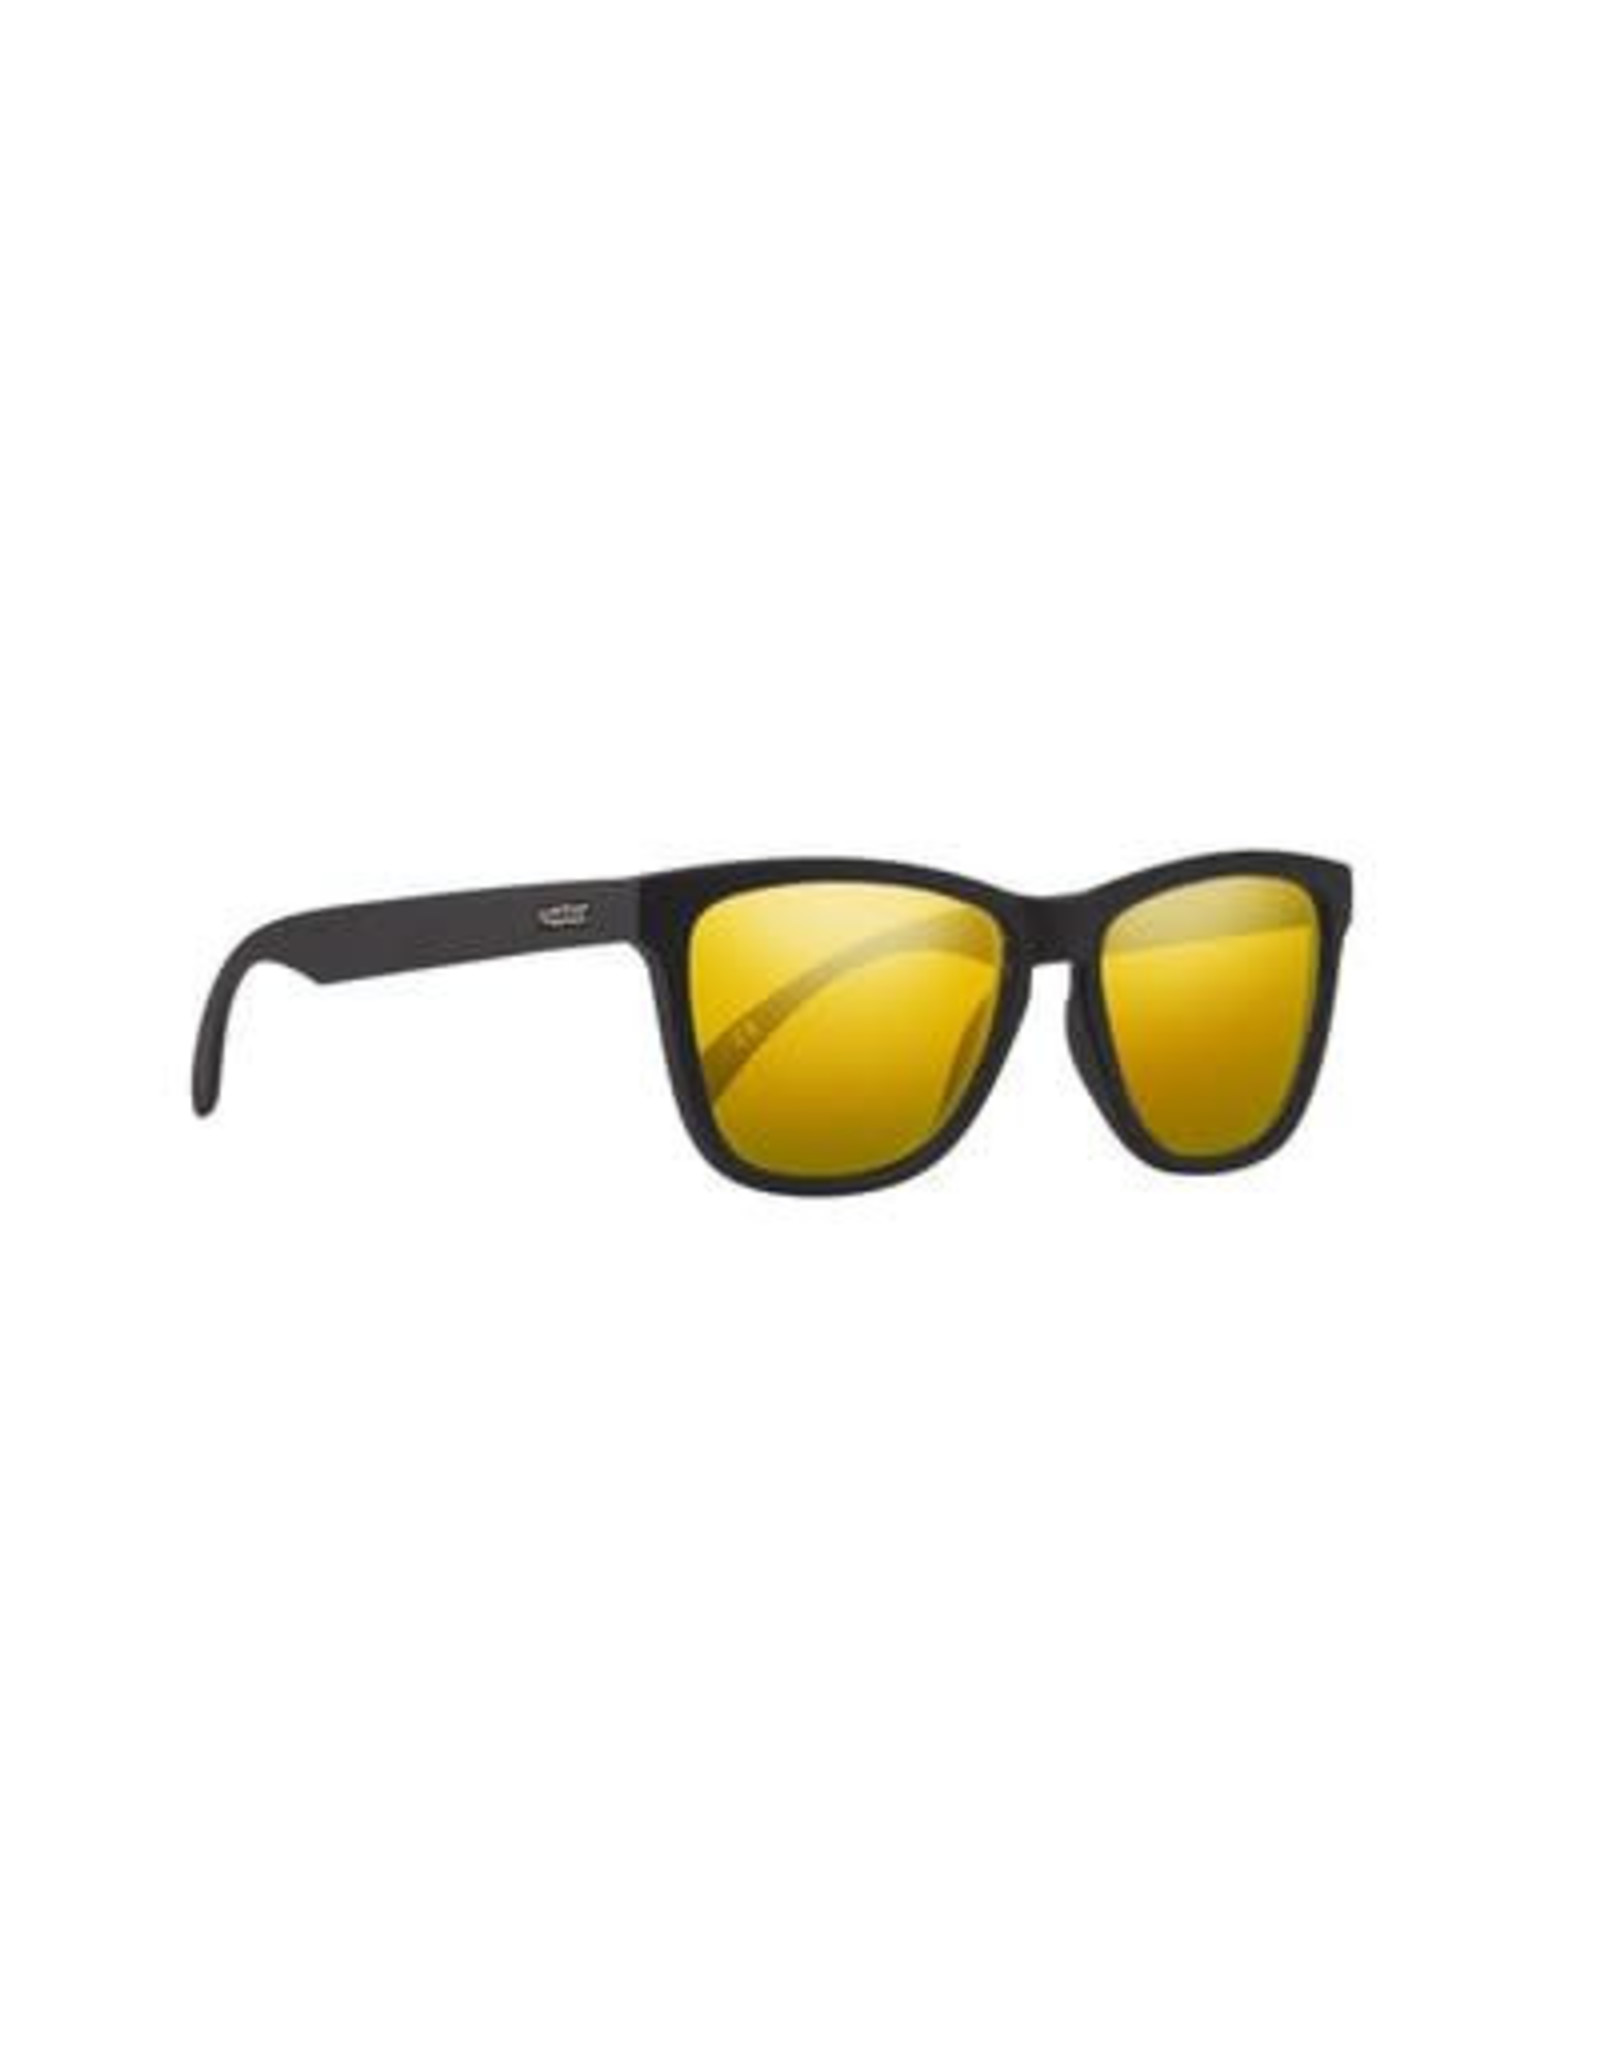 Nectar Nectar Boss Black Gold Polarized